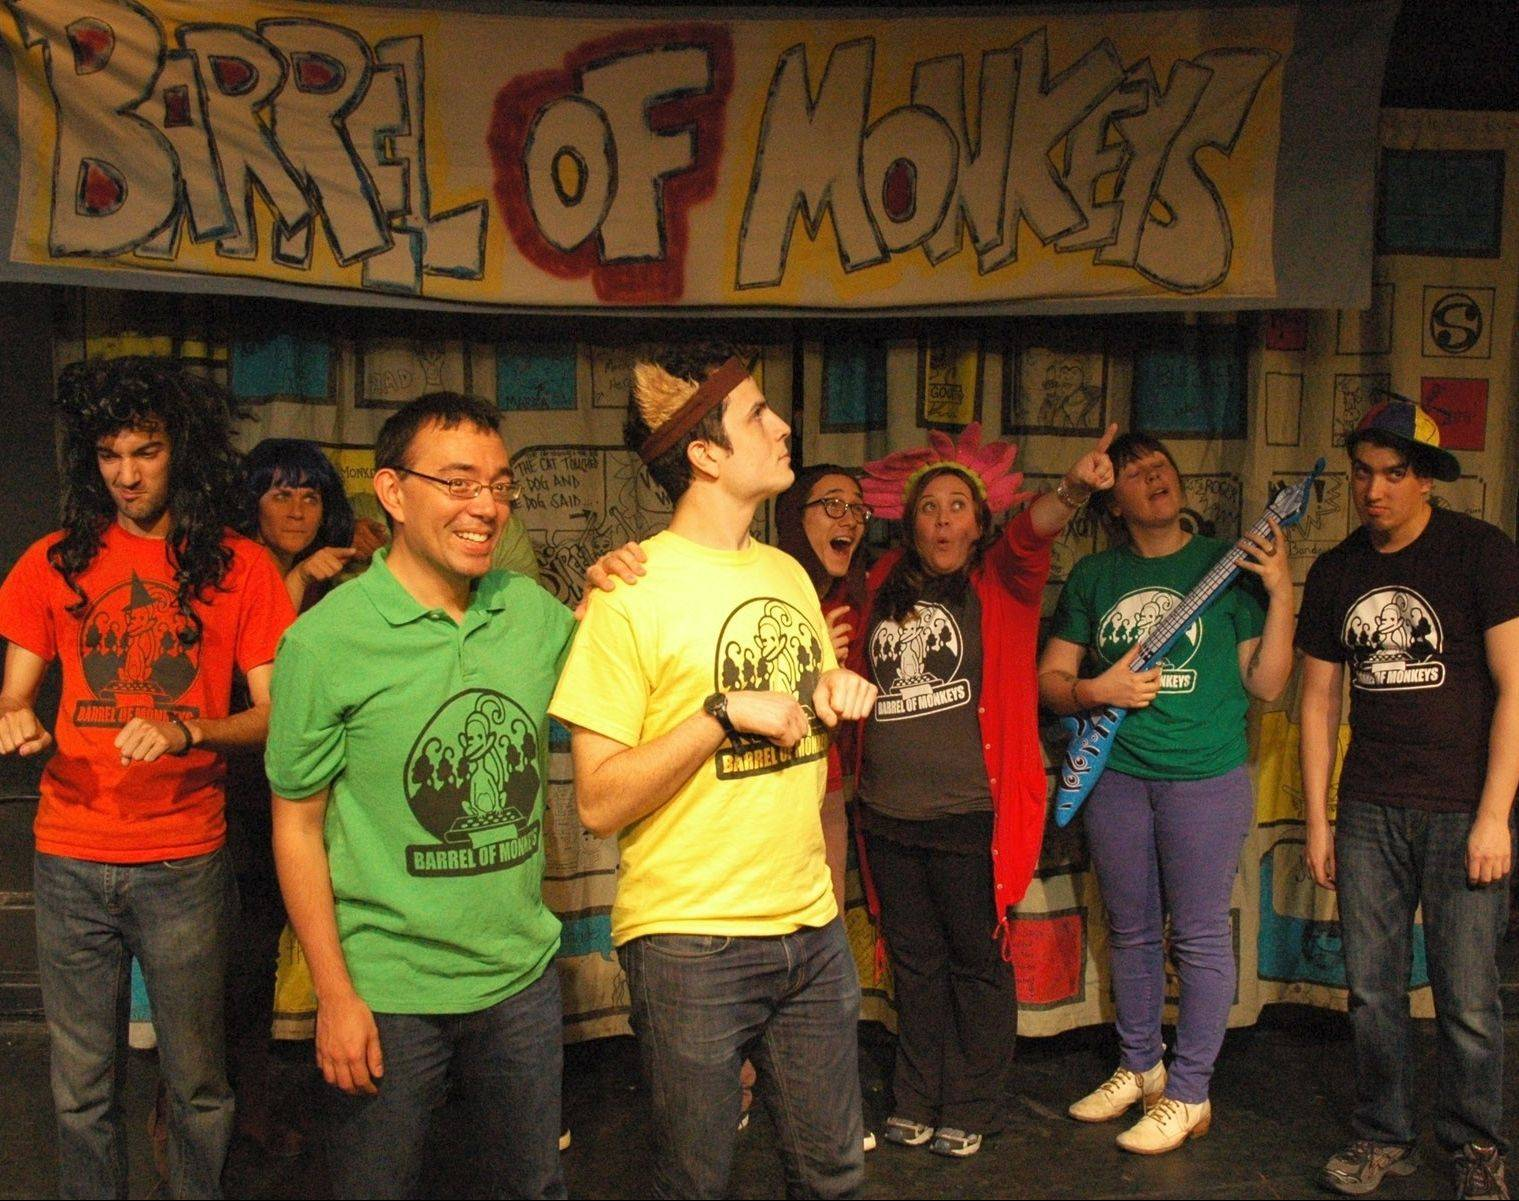 Glendale Heights native Tom Malinowski, in green, performs with Barrel of Monkeys in Chicago.